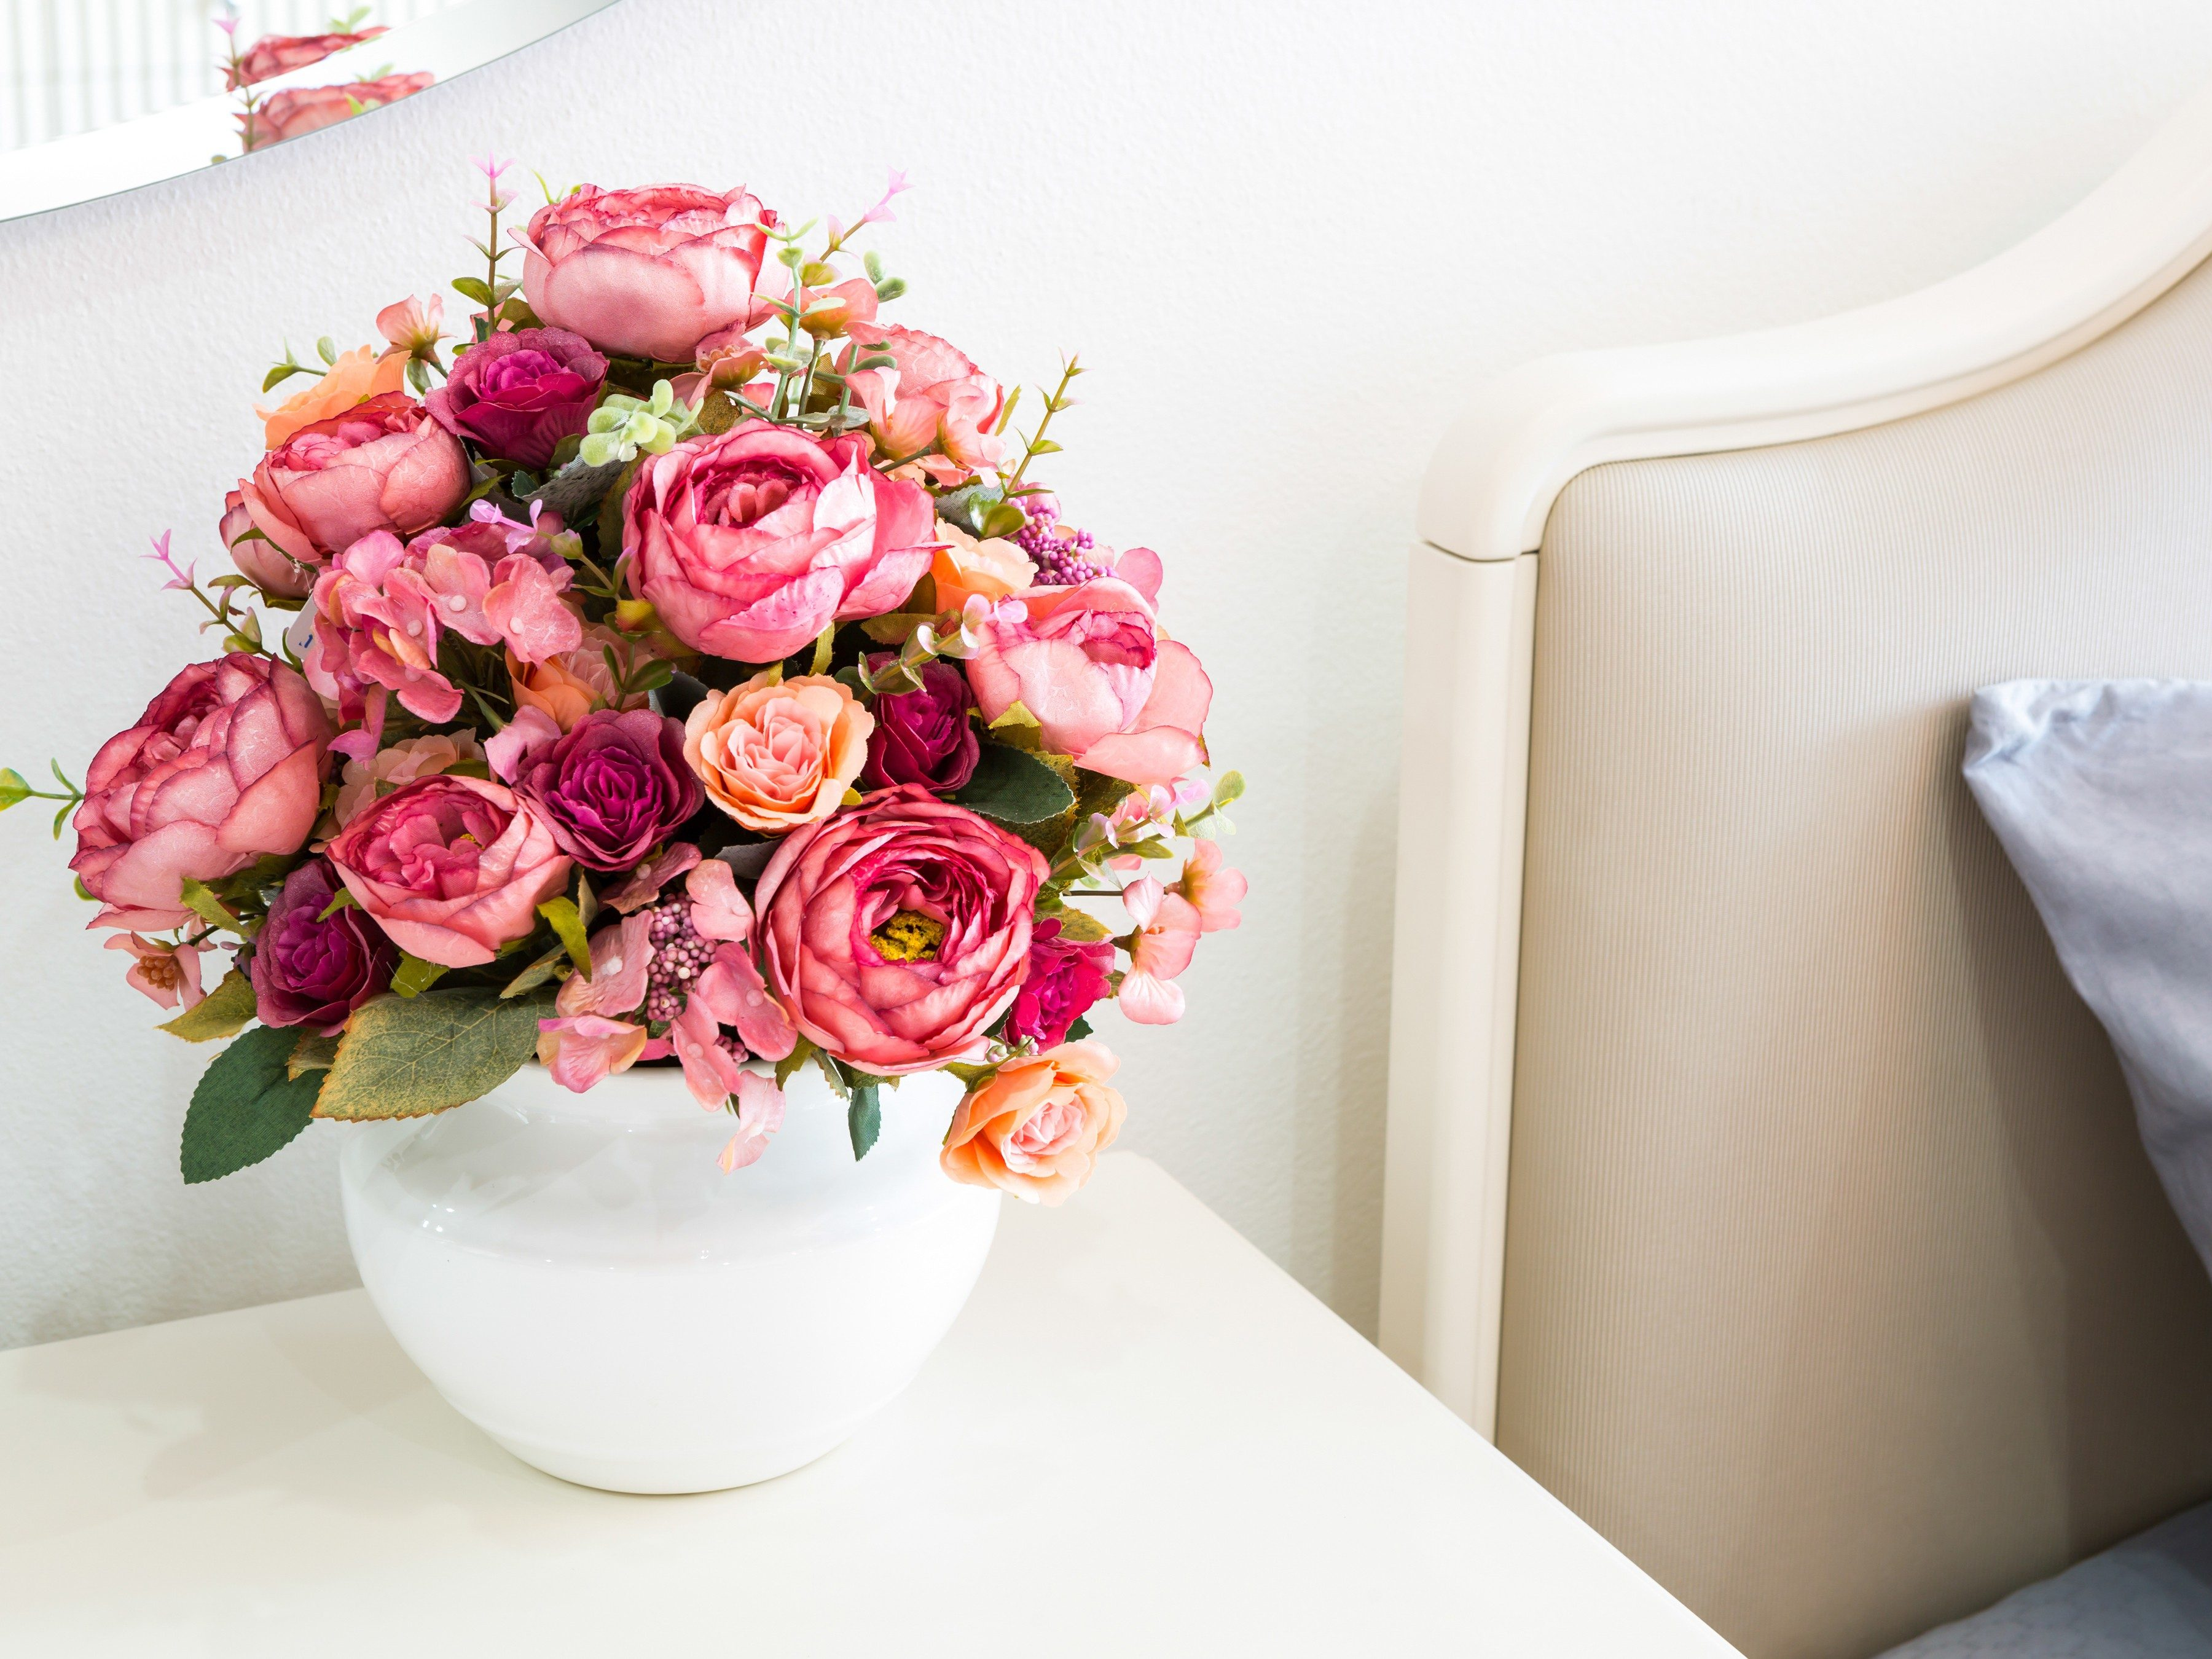 Use a Blow-Dryer to Dust Off Silk Flowers and Artificial Plants